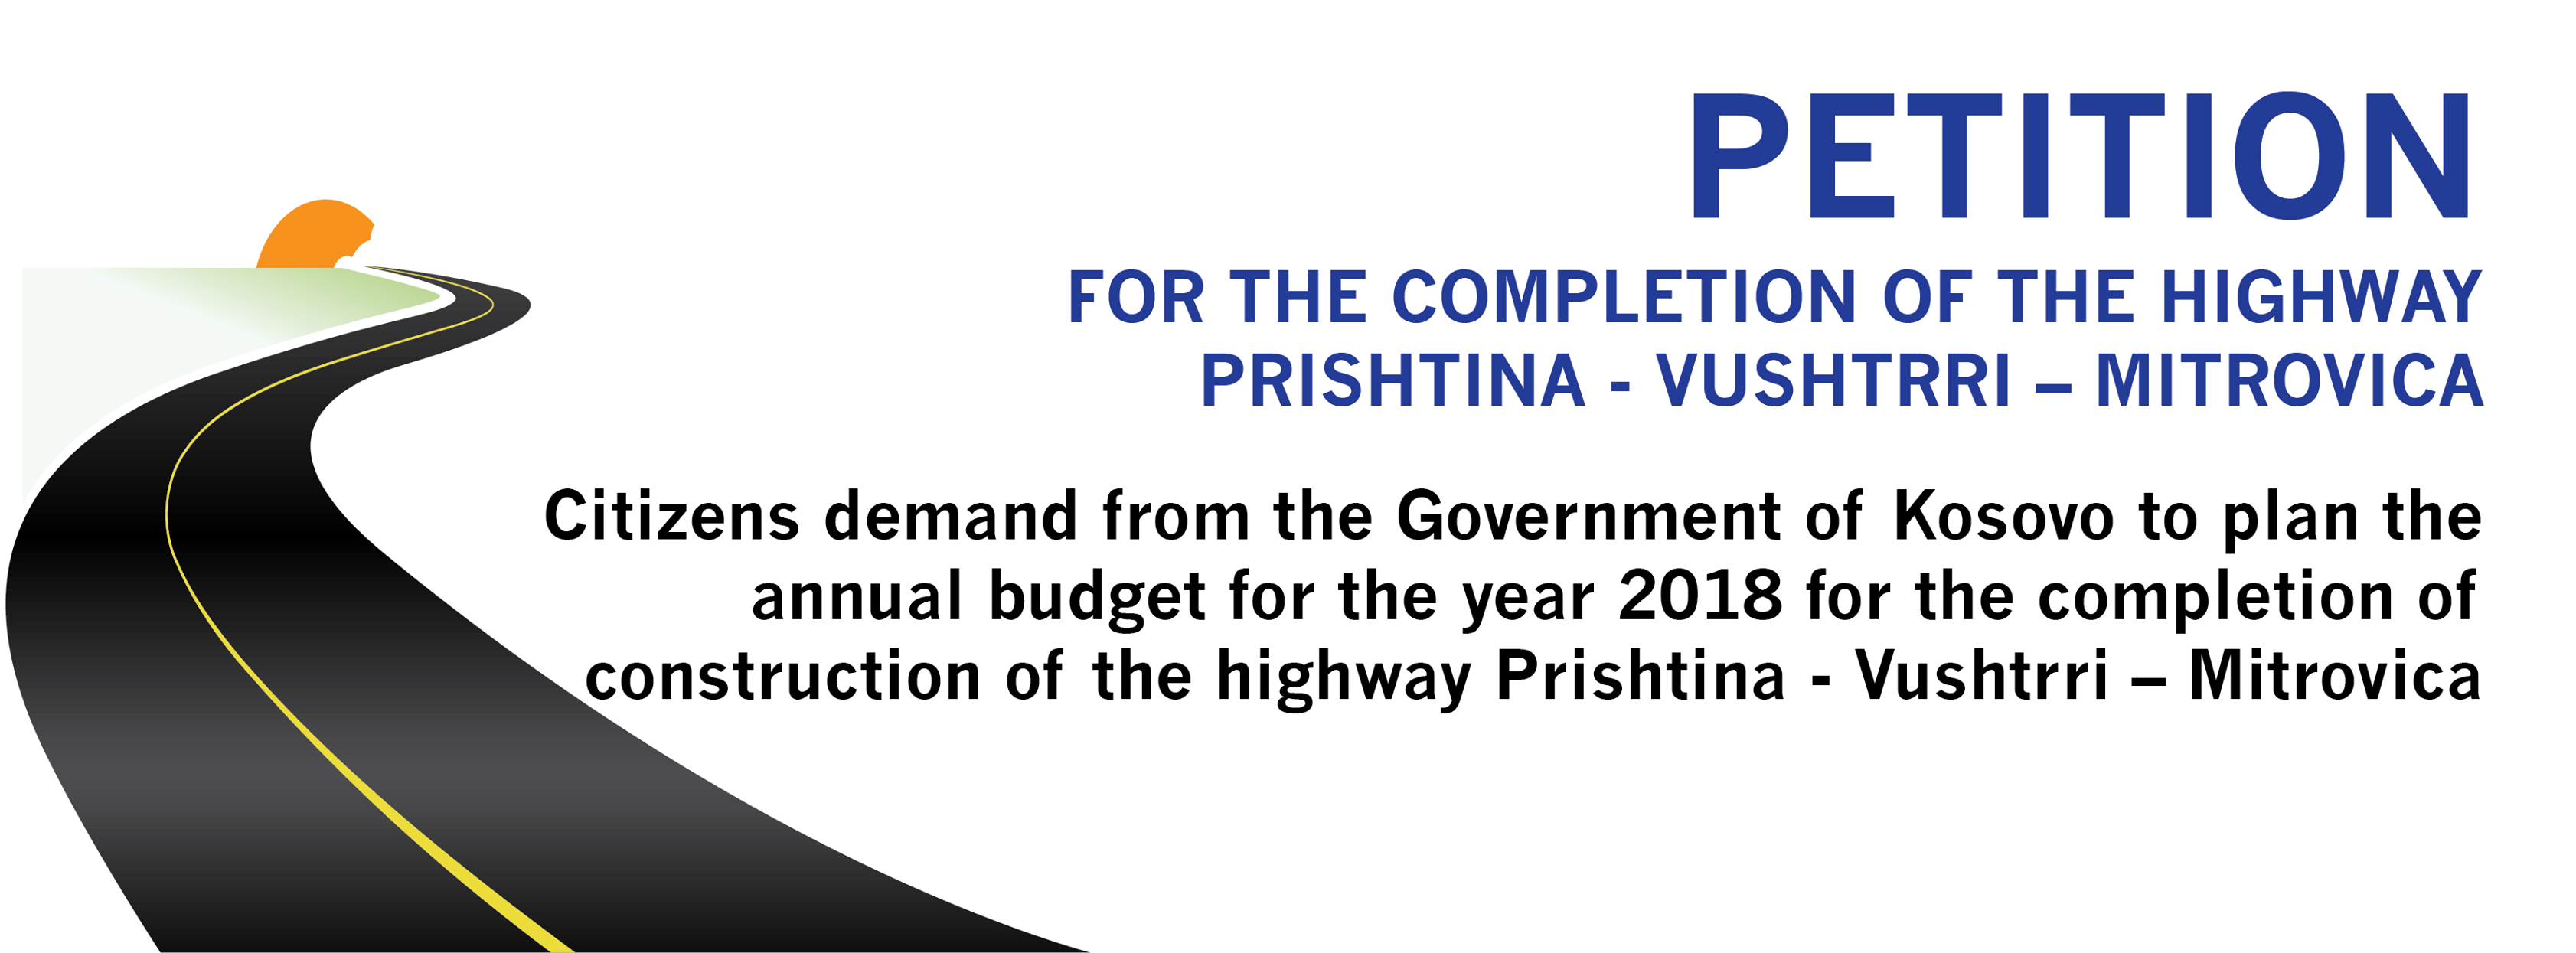 PETITION FOR THE COMPLETION OF THE HIGHWAY PRISHTINA - VUSHTRRI – MITROVICA